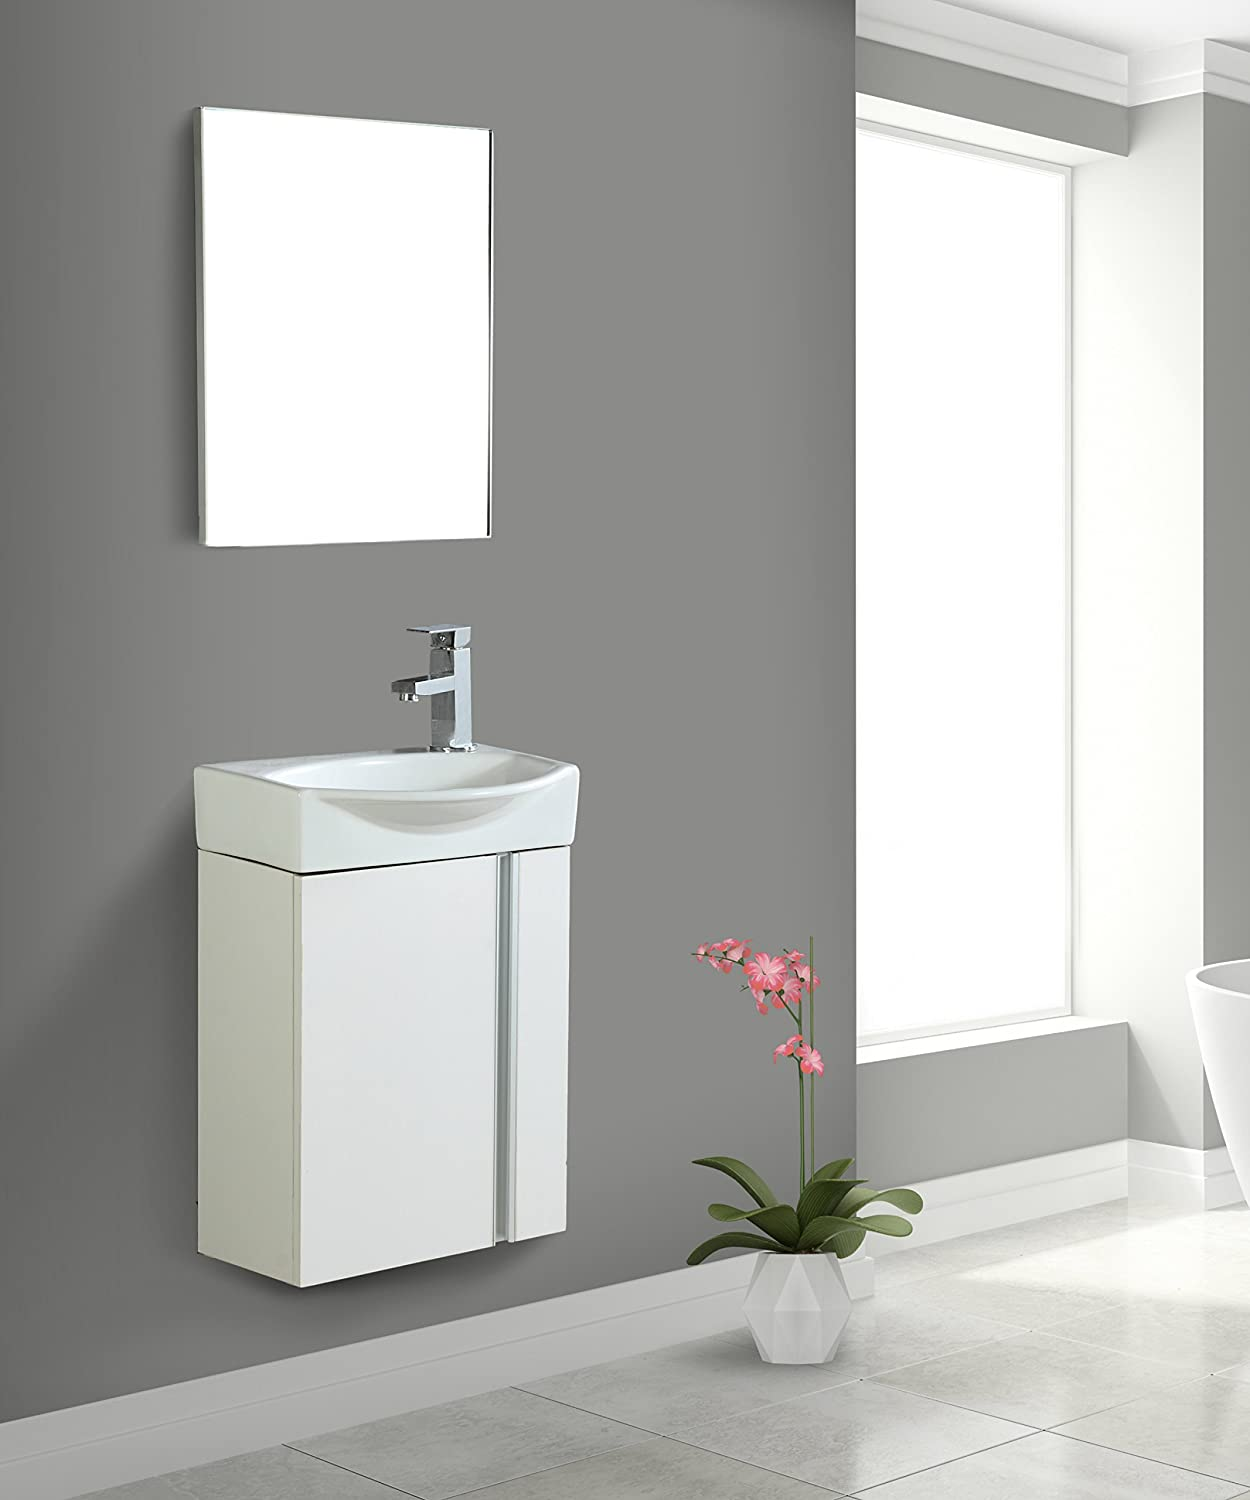 Buy Fine Fixtures Compacto Small Bathroom Vanity Set With Sink Wall Mounted Cabinet Sink Top And Mirror Included White Online In Vietnam B01msn4aao